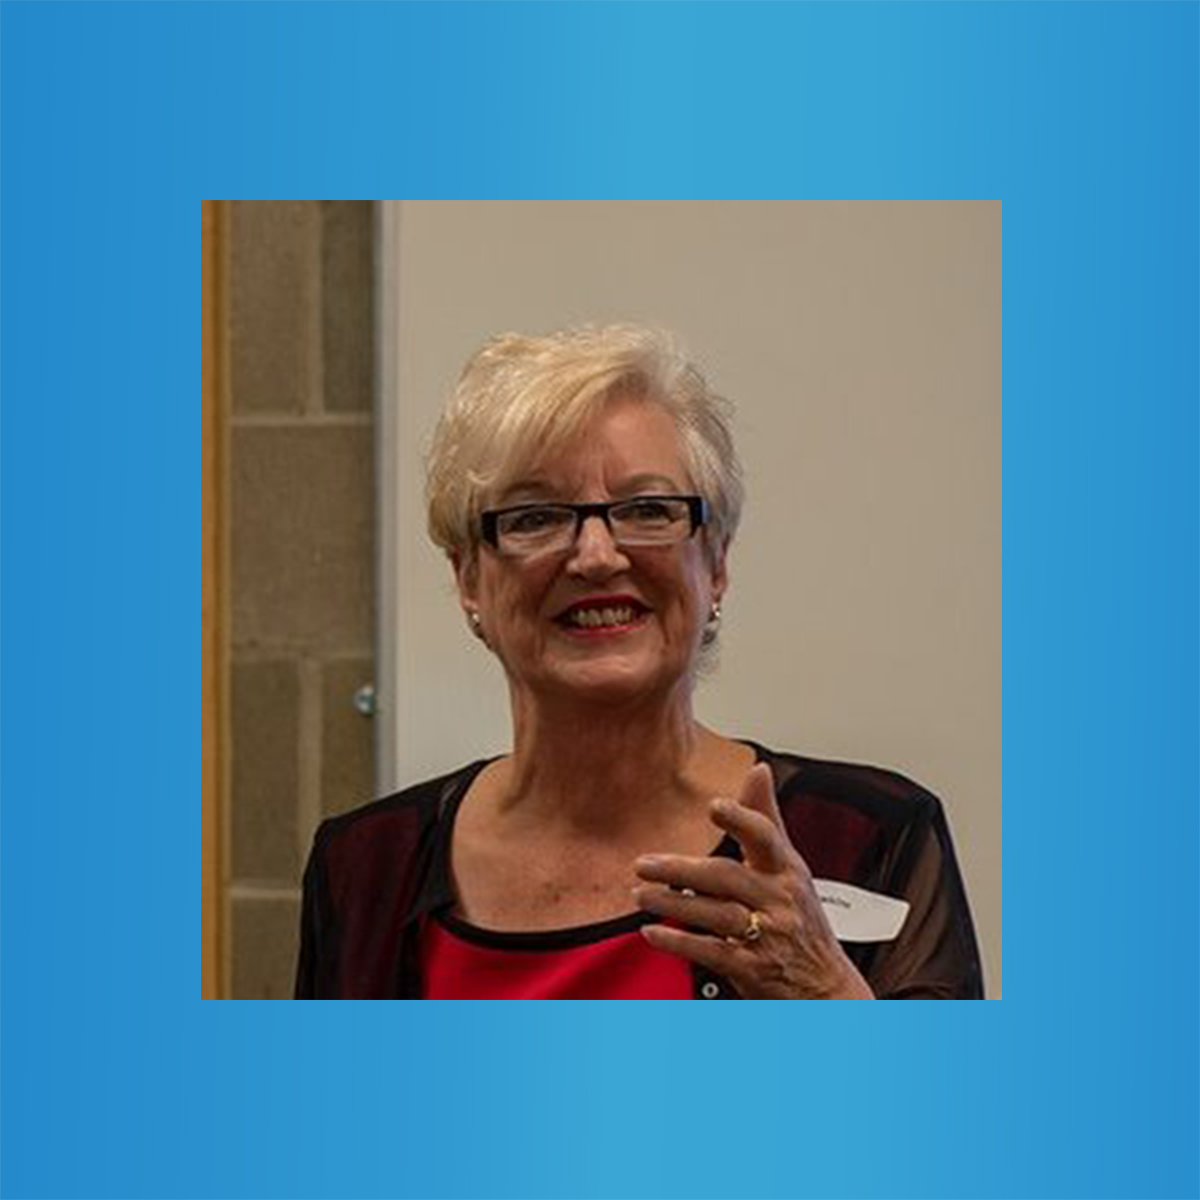 Episode 26: Ann Hawkins - Networking for impact